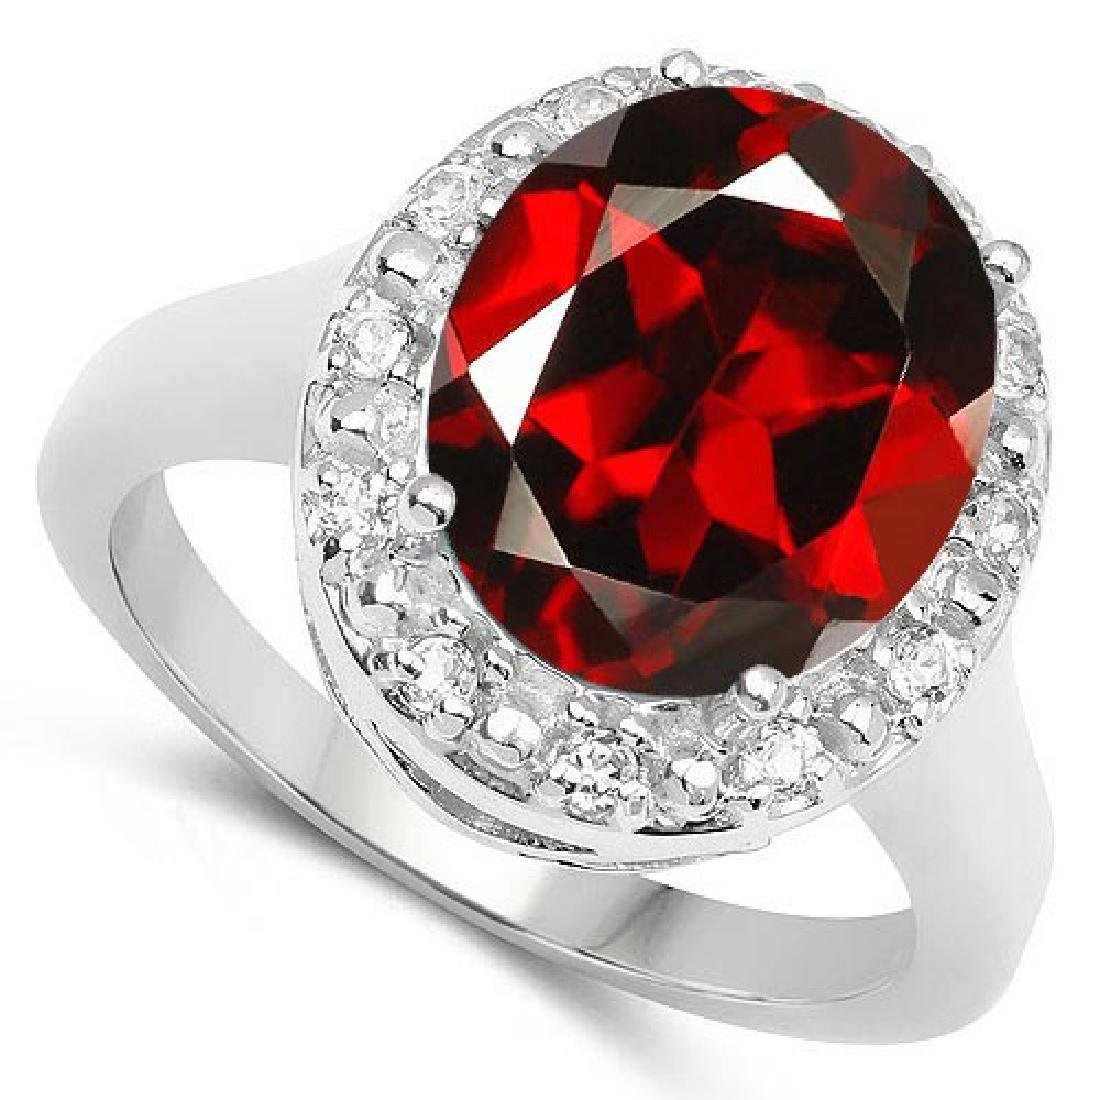 Certified 1.20 Ctw. Genuine Garnet And Diamond 14K Whit